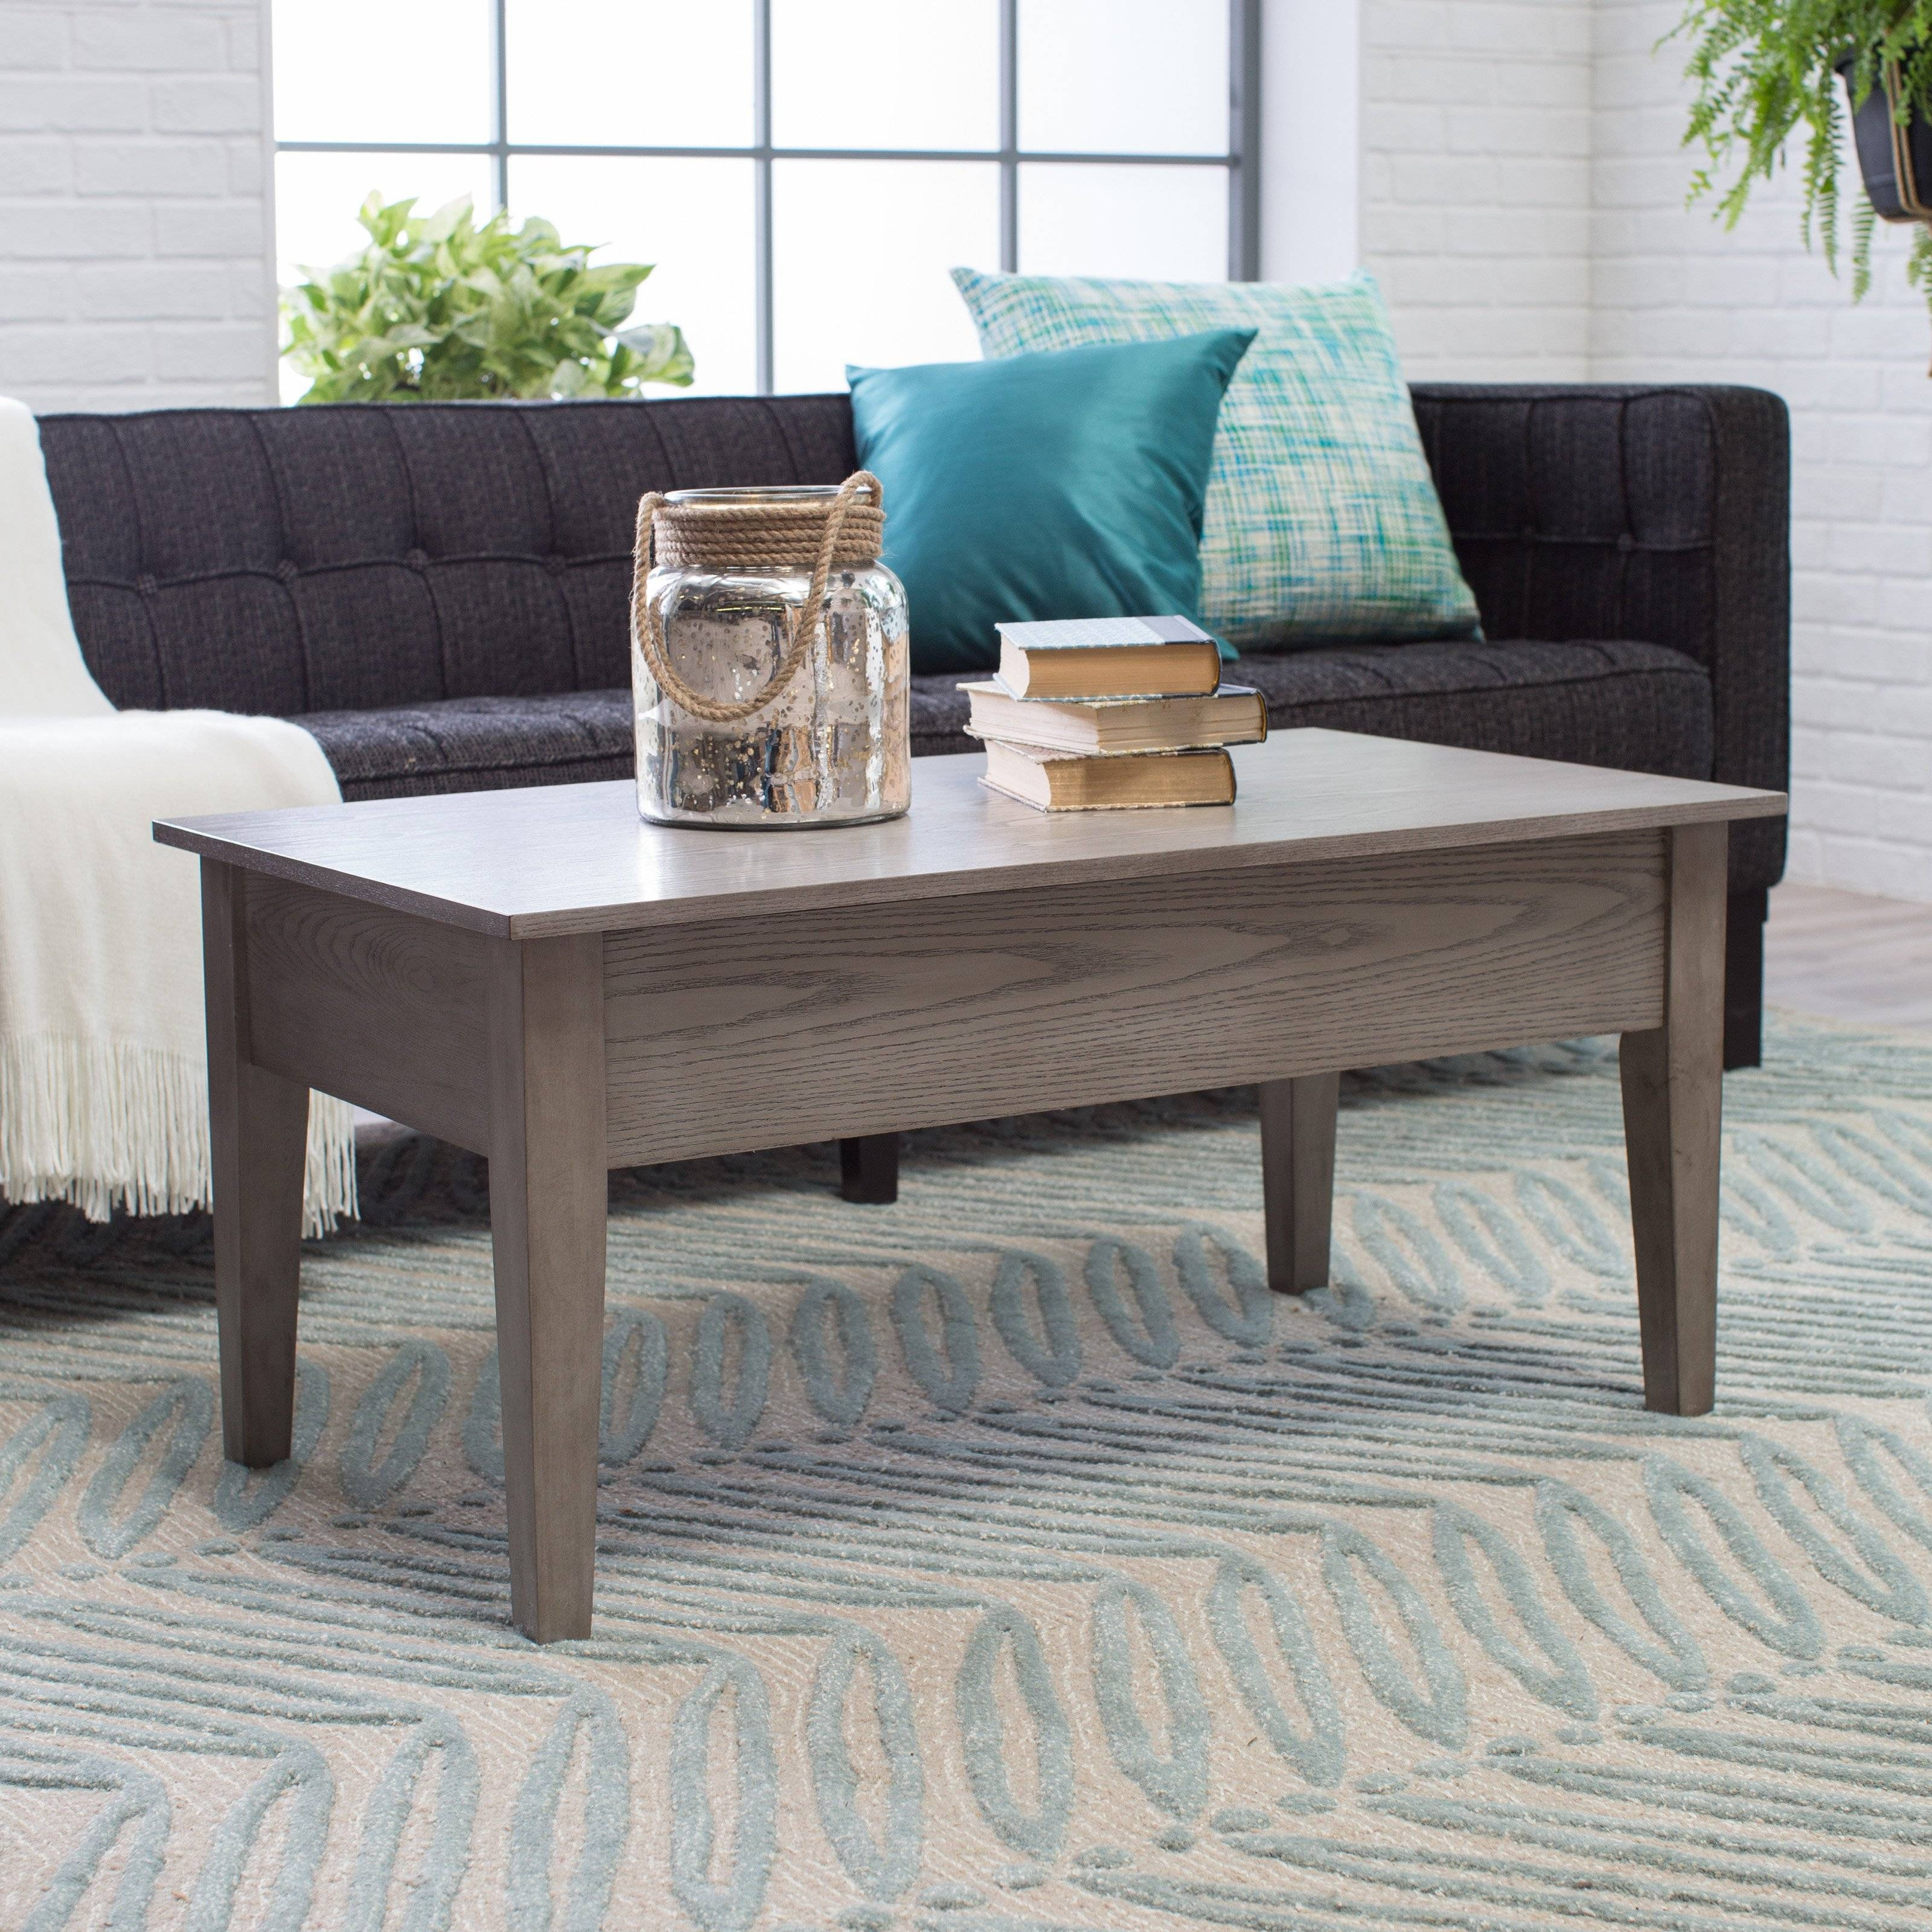 Sauder Cannery Bridge Lift Top Coffee Table - Coffee Tables At in Lift Up Top Coffee Tables (Image 26 of 30)